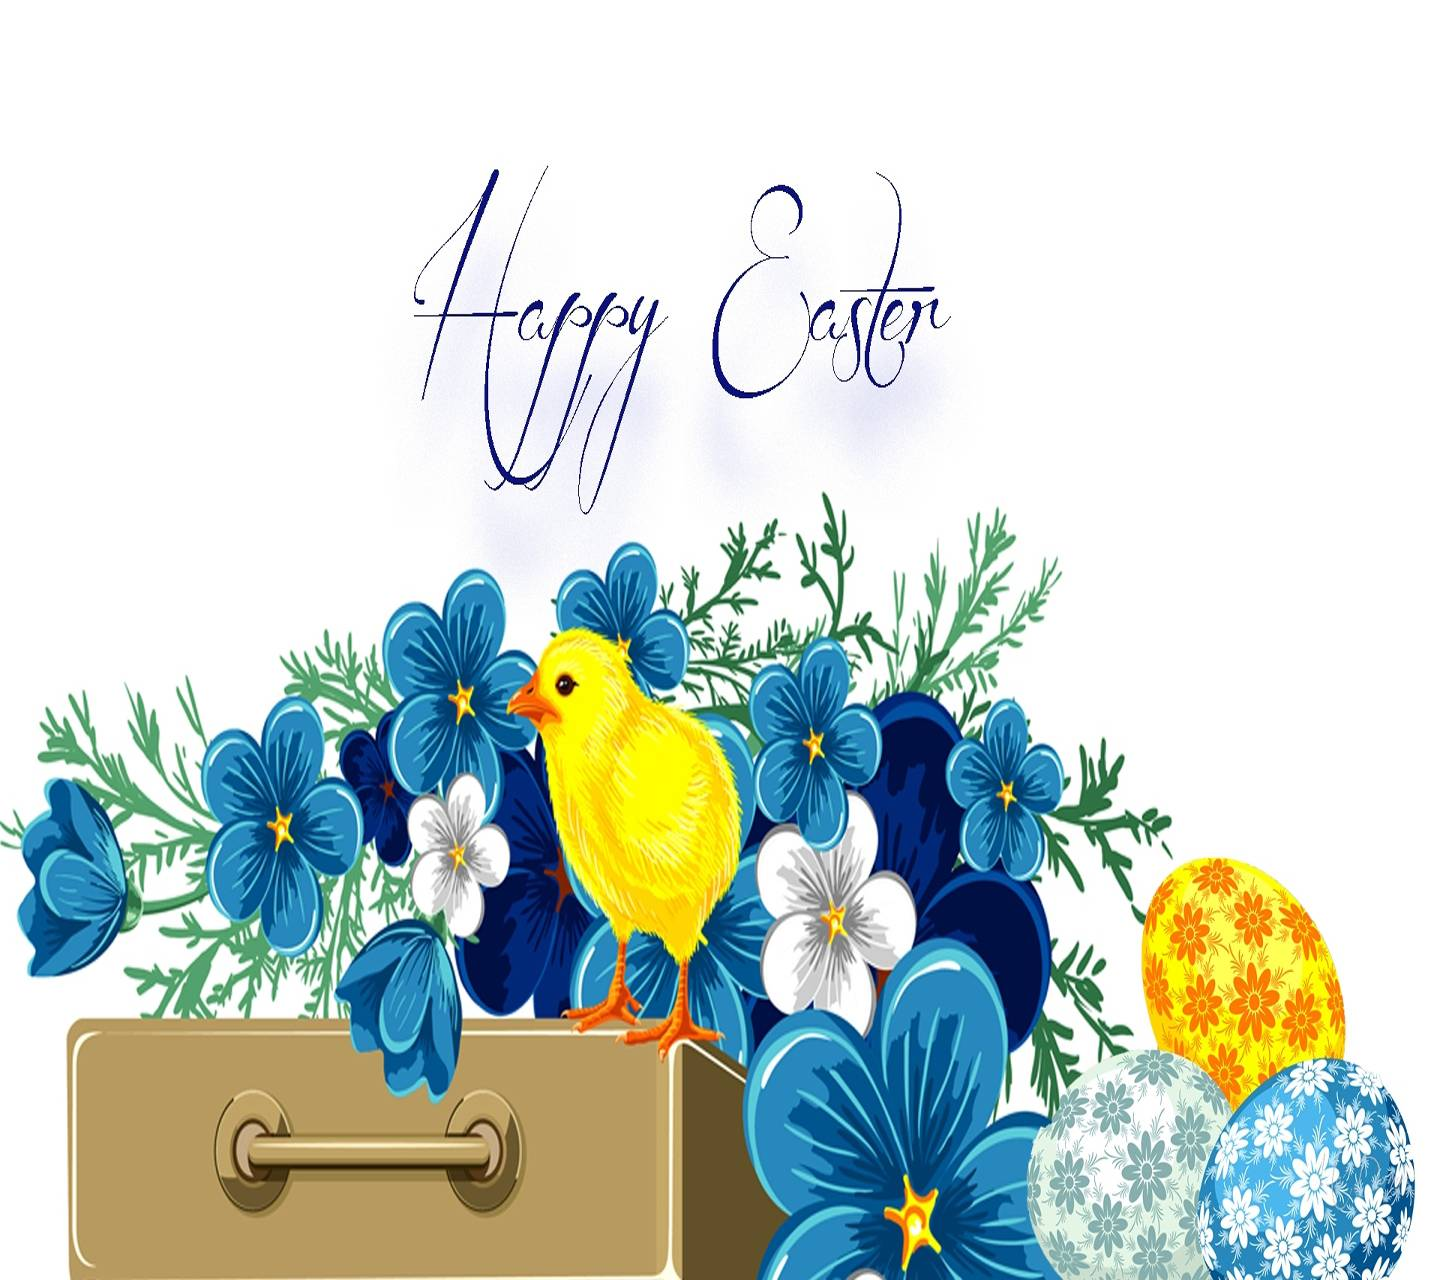 Happy Easter Wallpaper by Savanna 0d Free on ZEDGE™